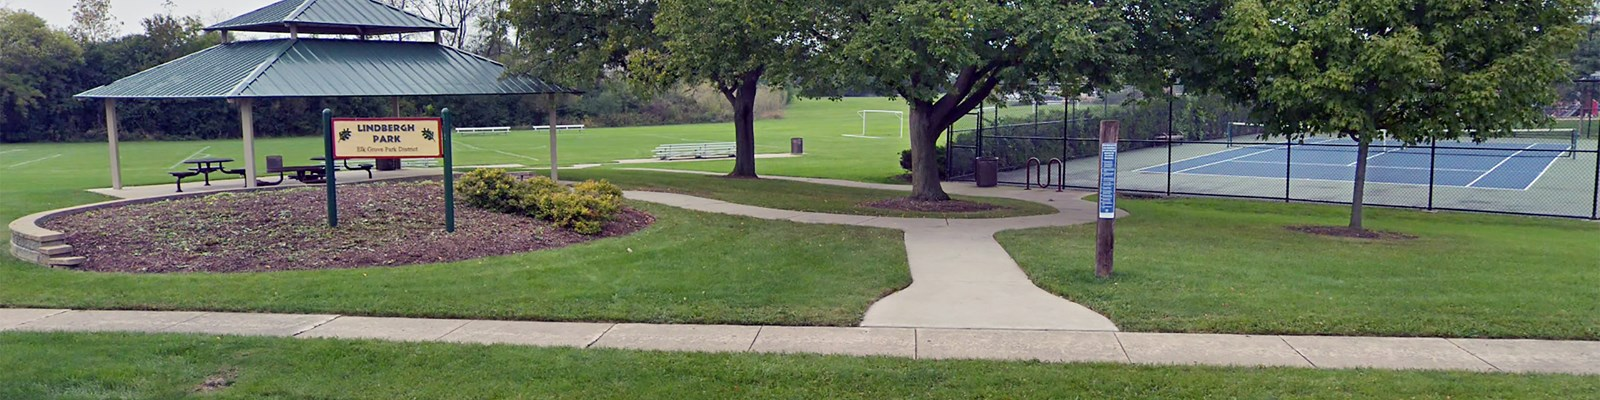 Lindbergh Park, Playground, Shelters, Soccer Fields and Tennis Courts